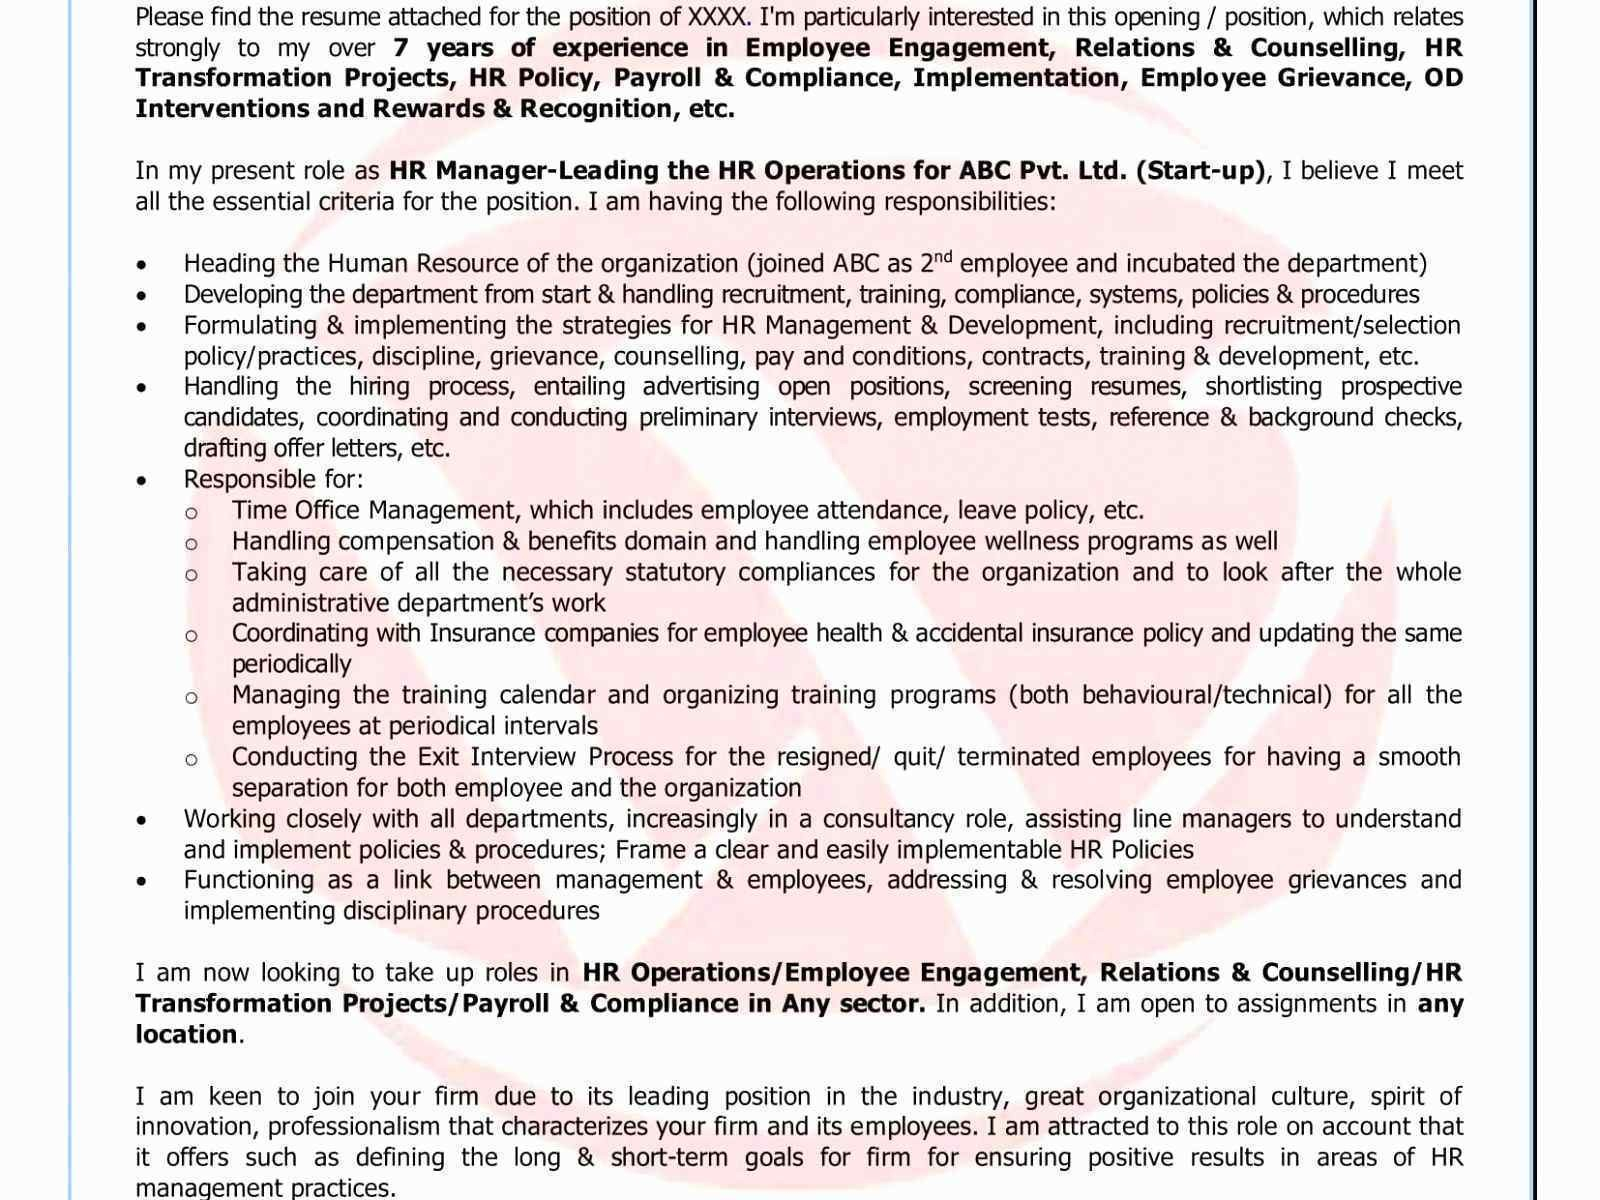 Textedit Resume Template - Inspirationa Resume Template for Mac P